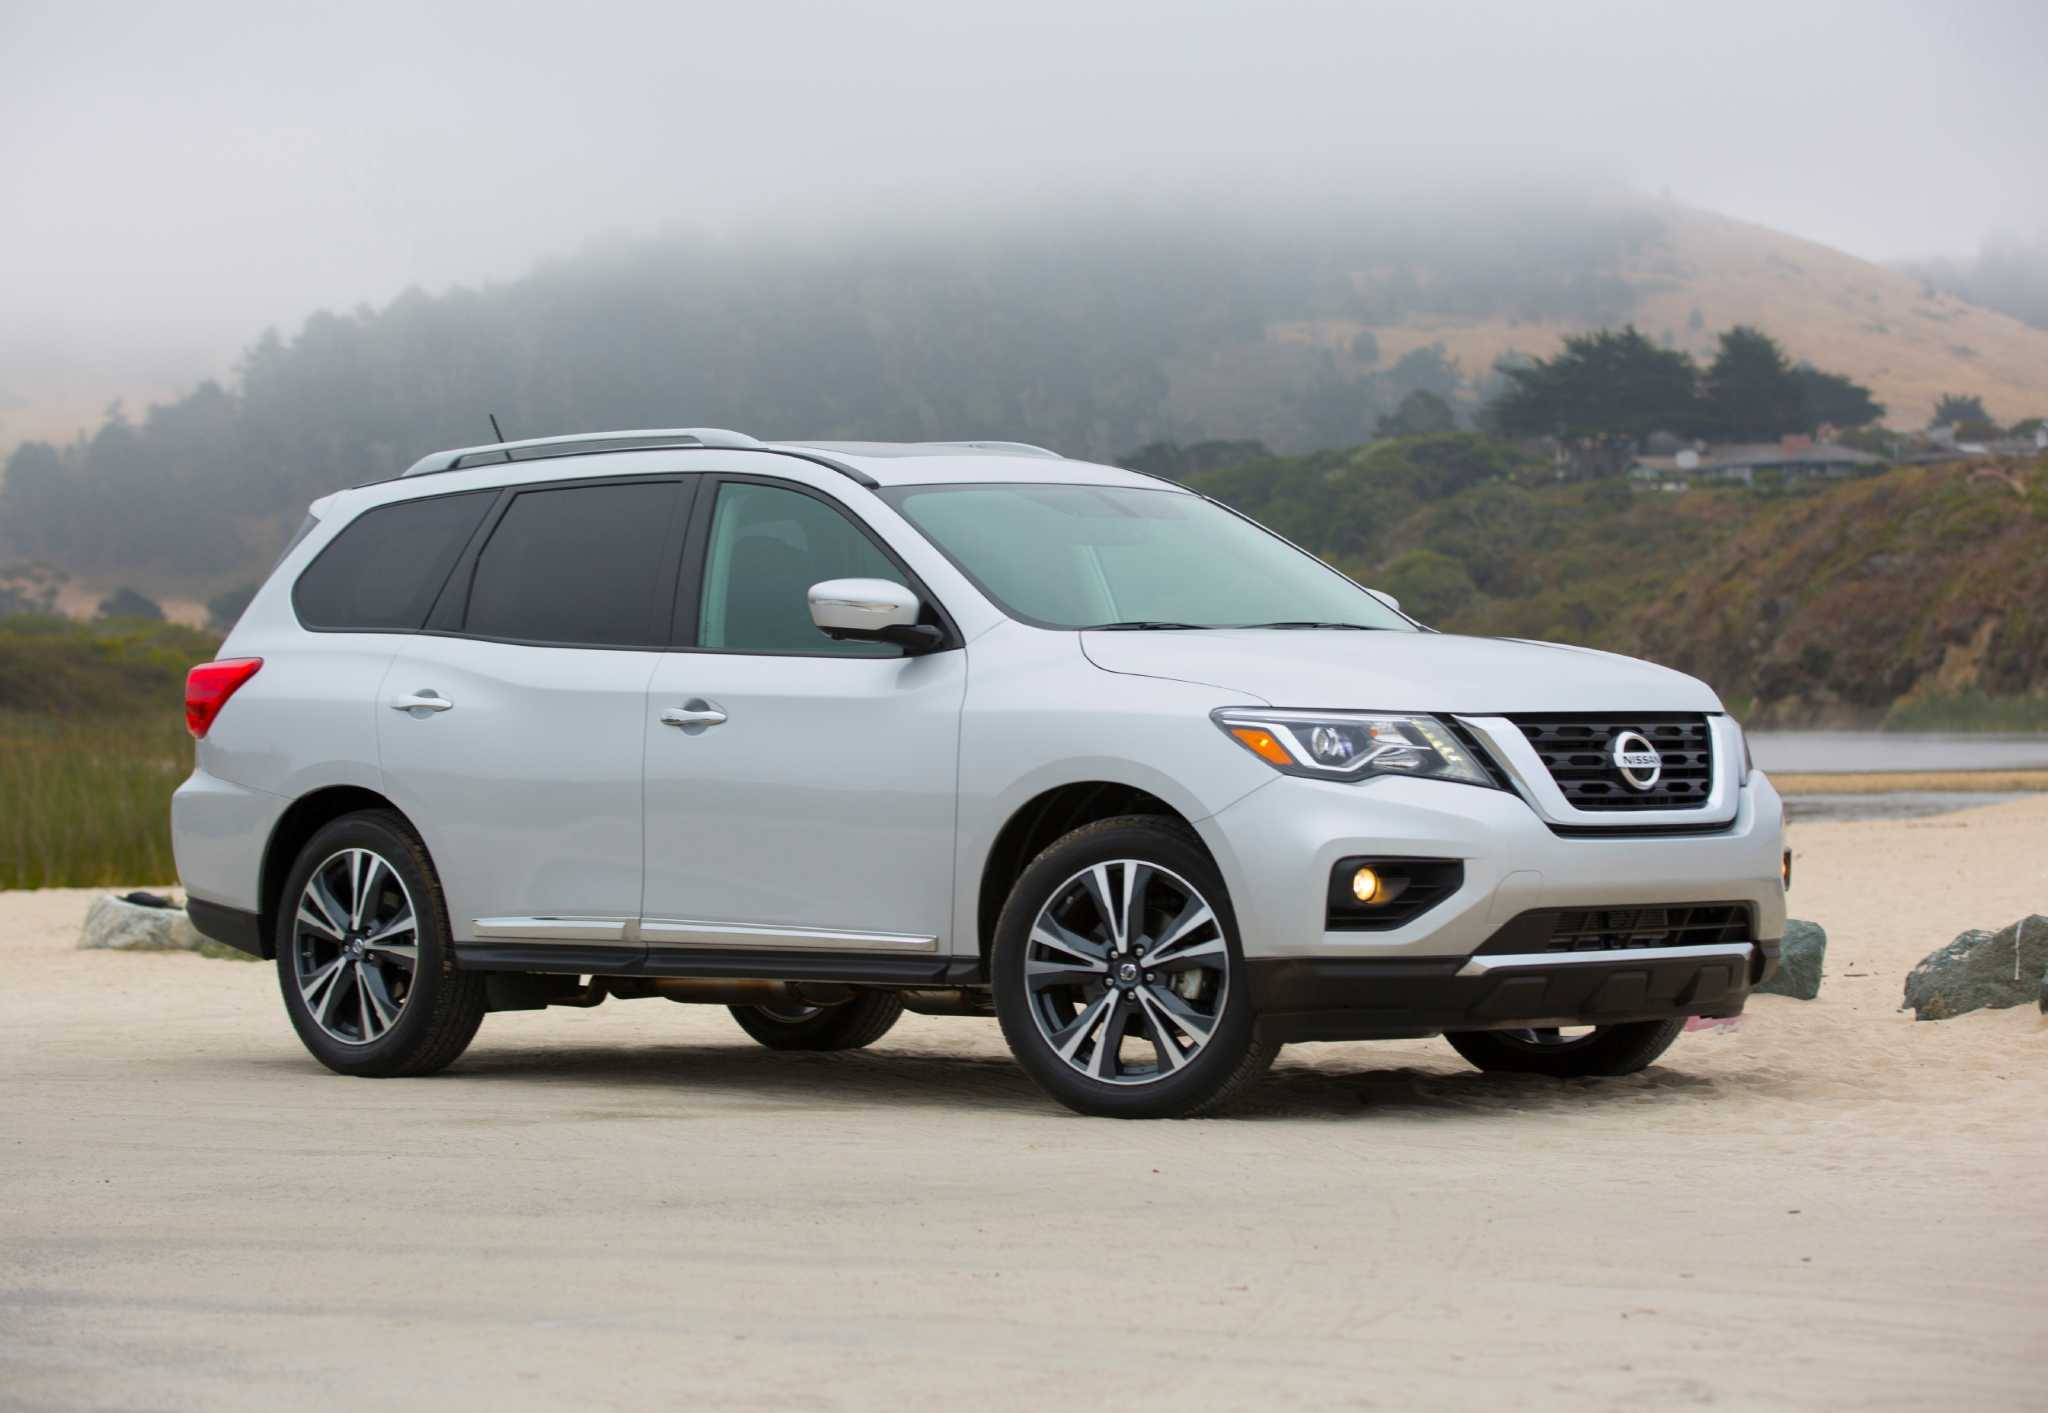 Nissan puts Pathfinder on path to more power, safety technology